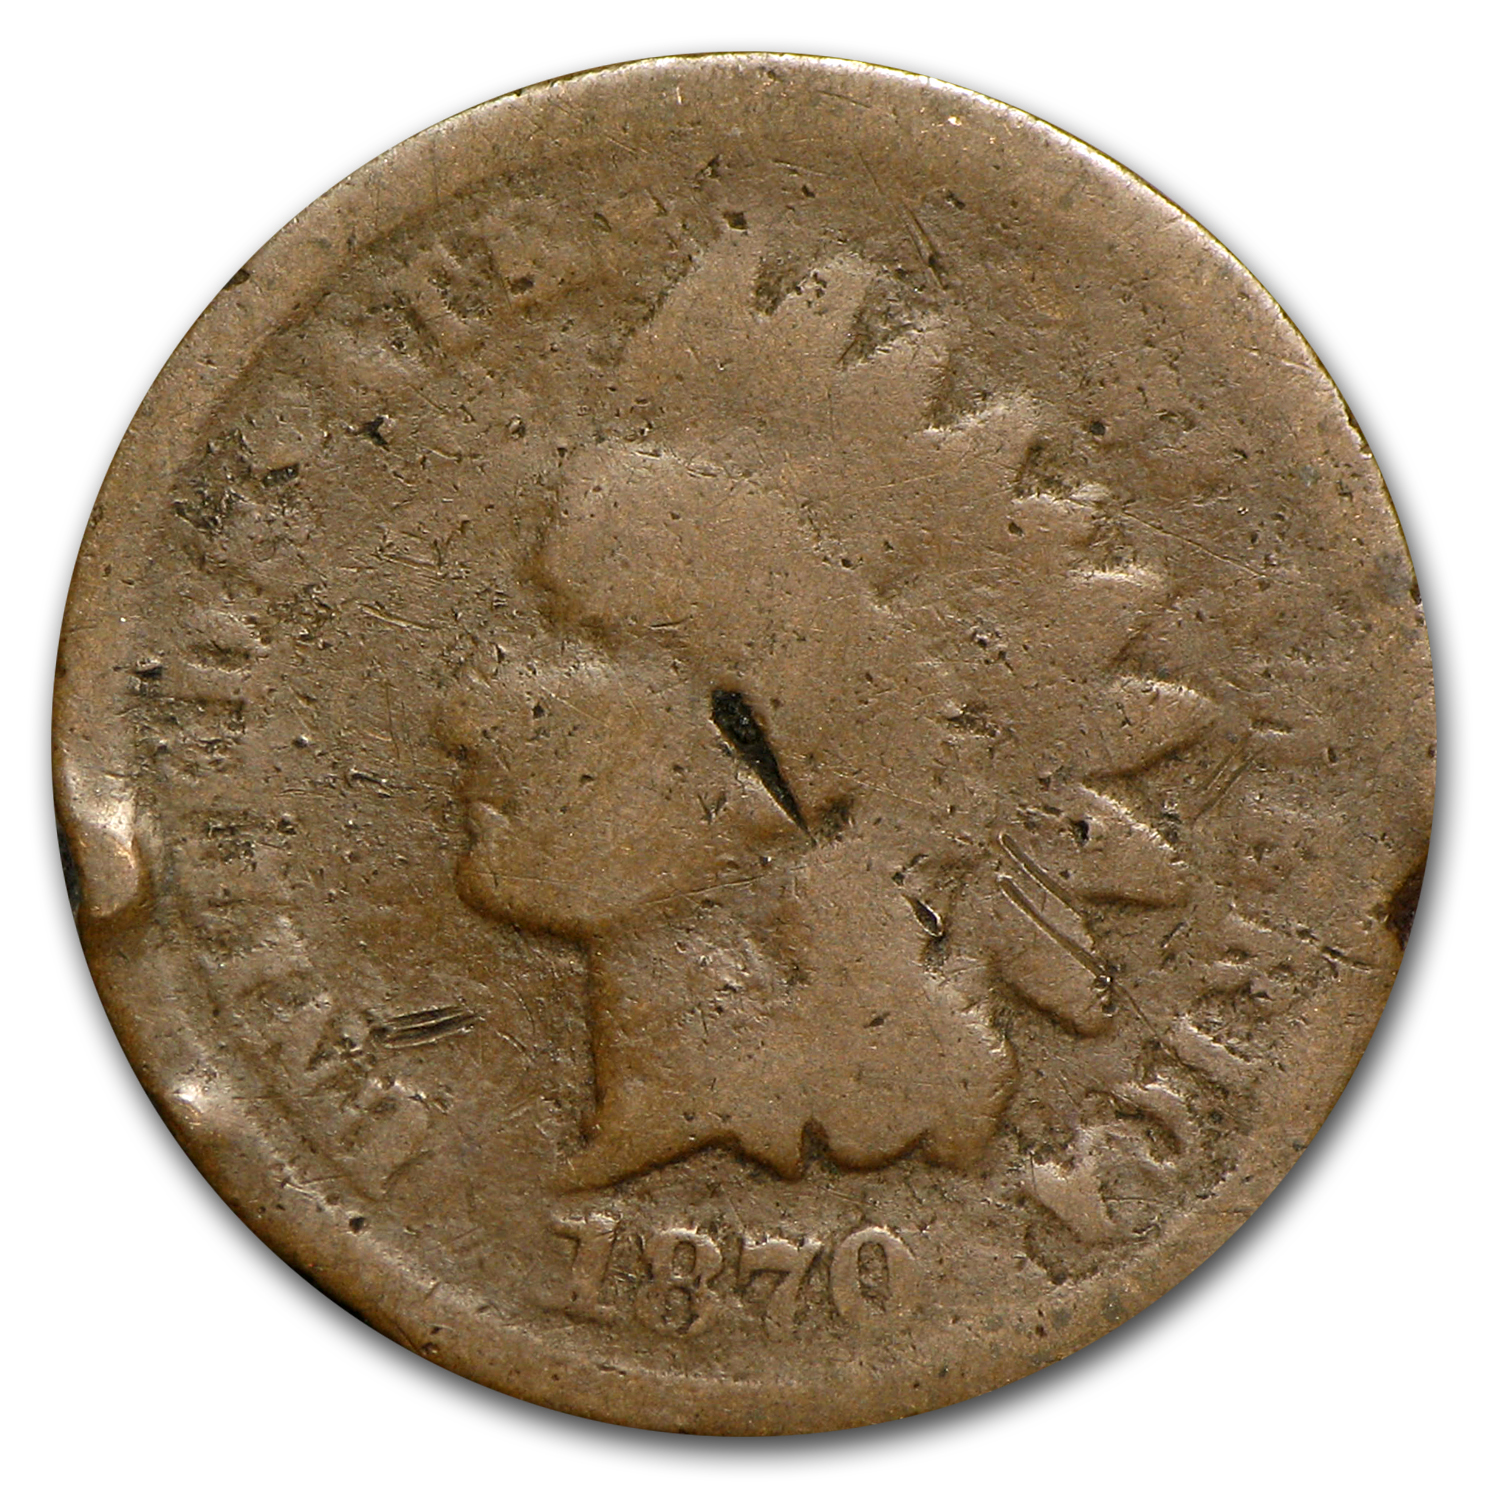 1870 Indian Head Cent - Cull